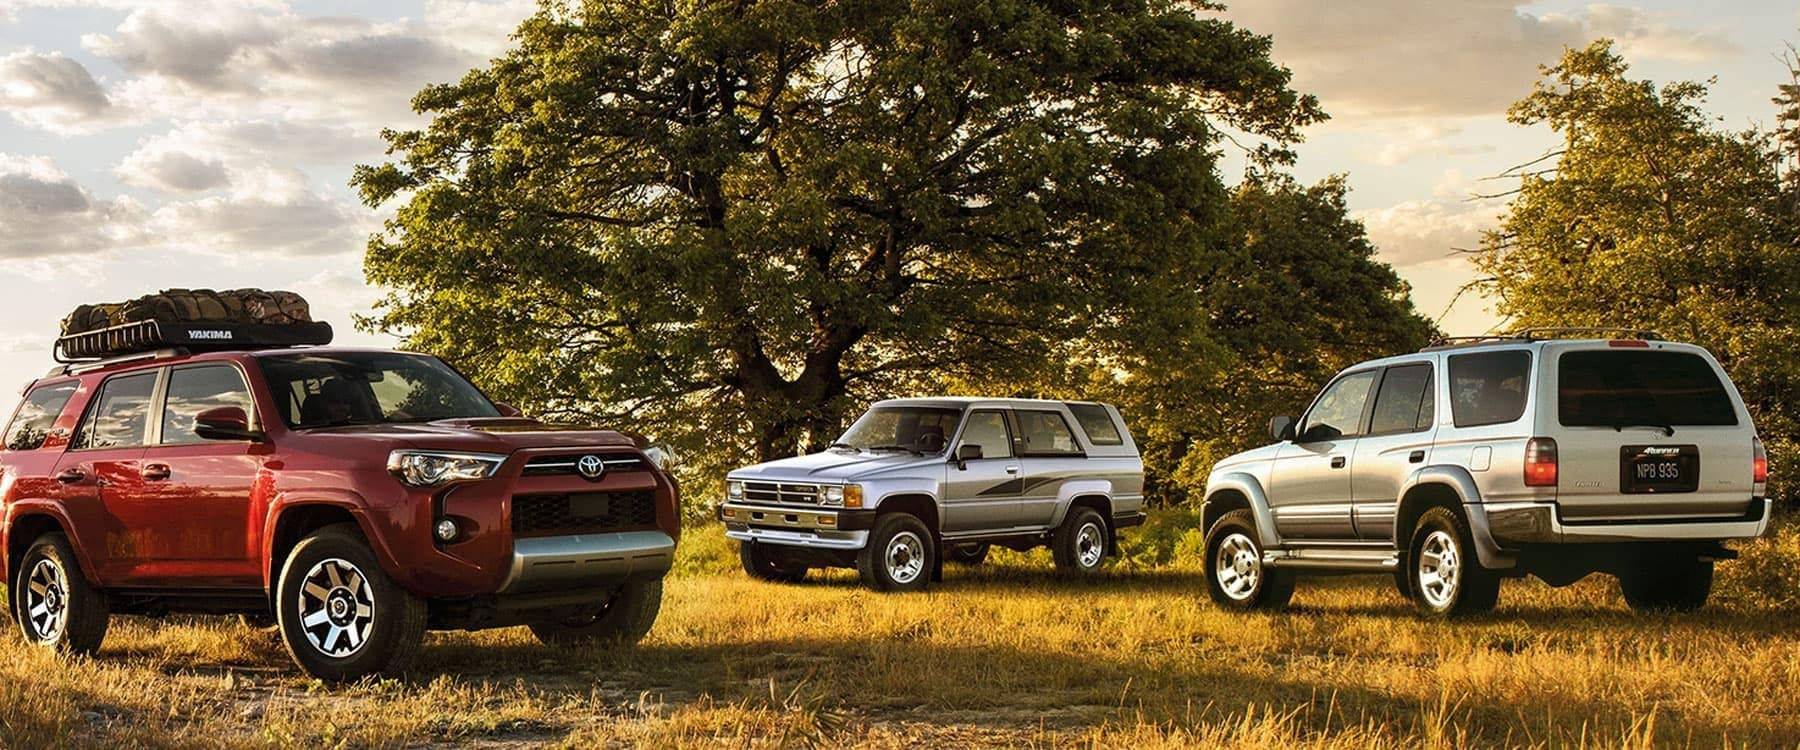 3 Toyota 4Runners sitting in an open field